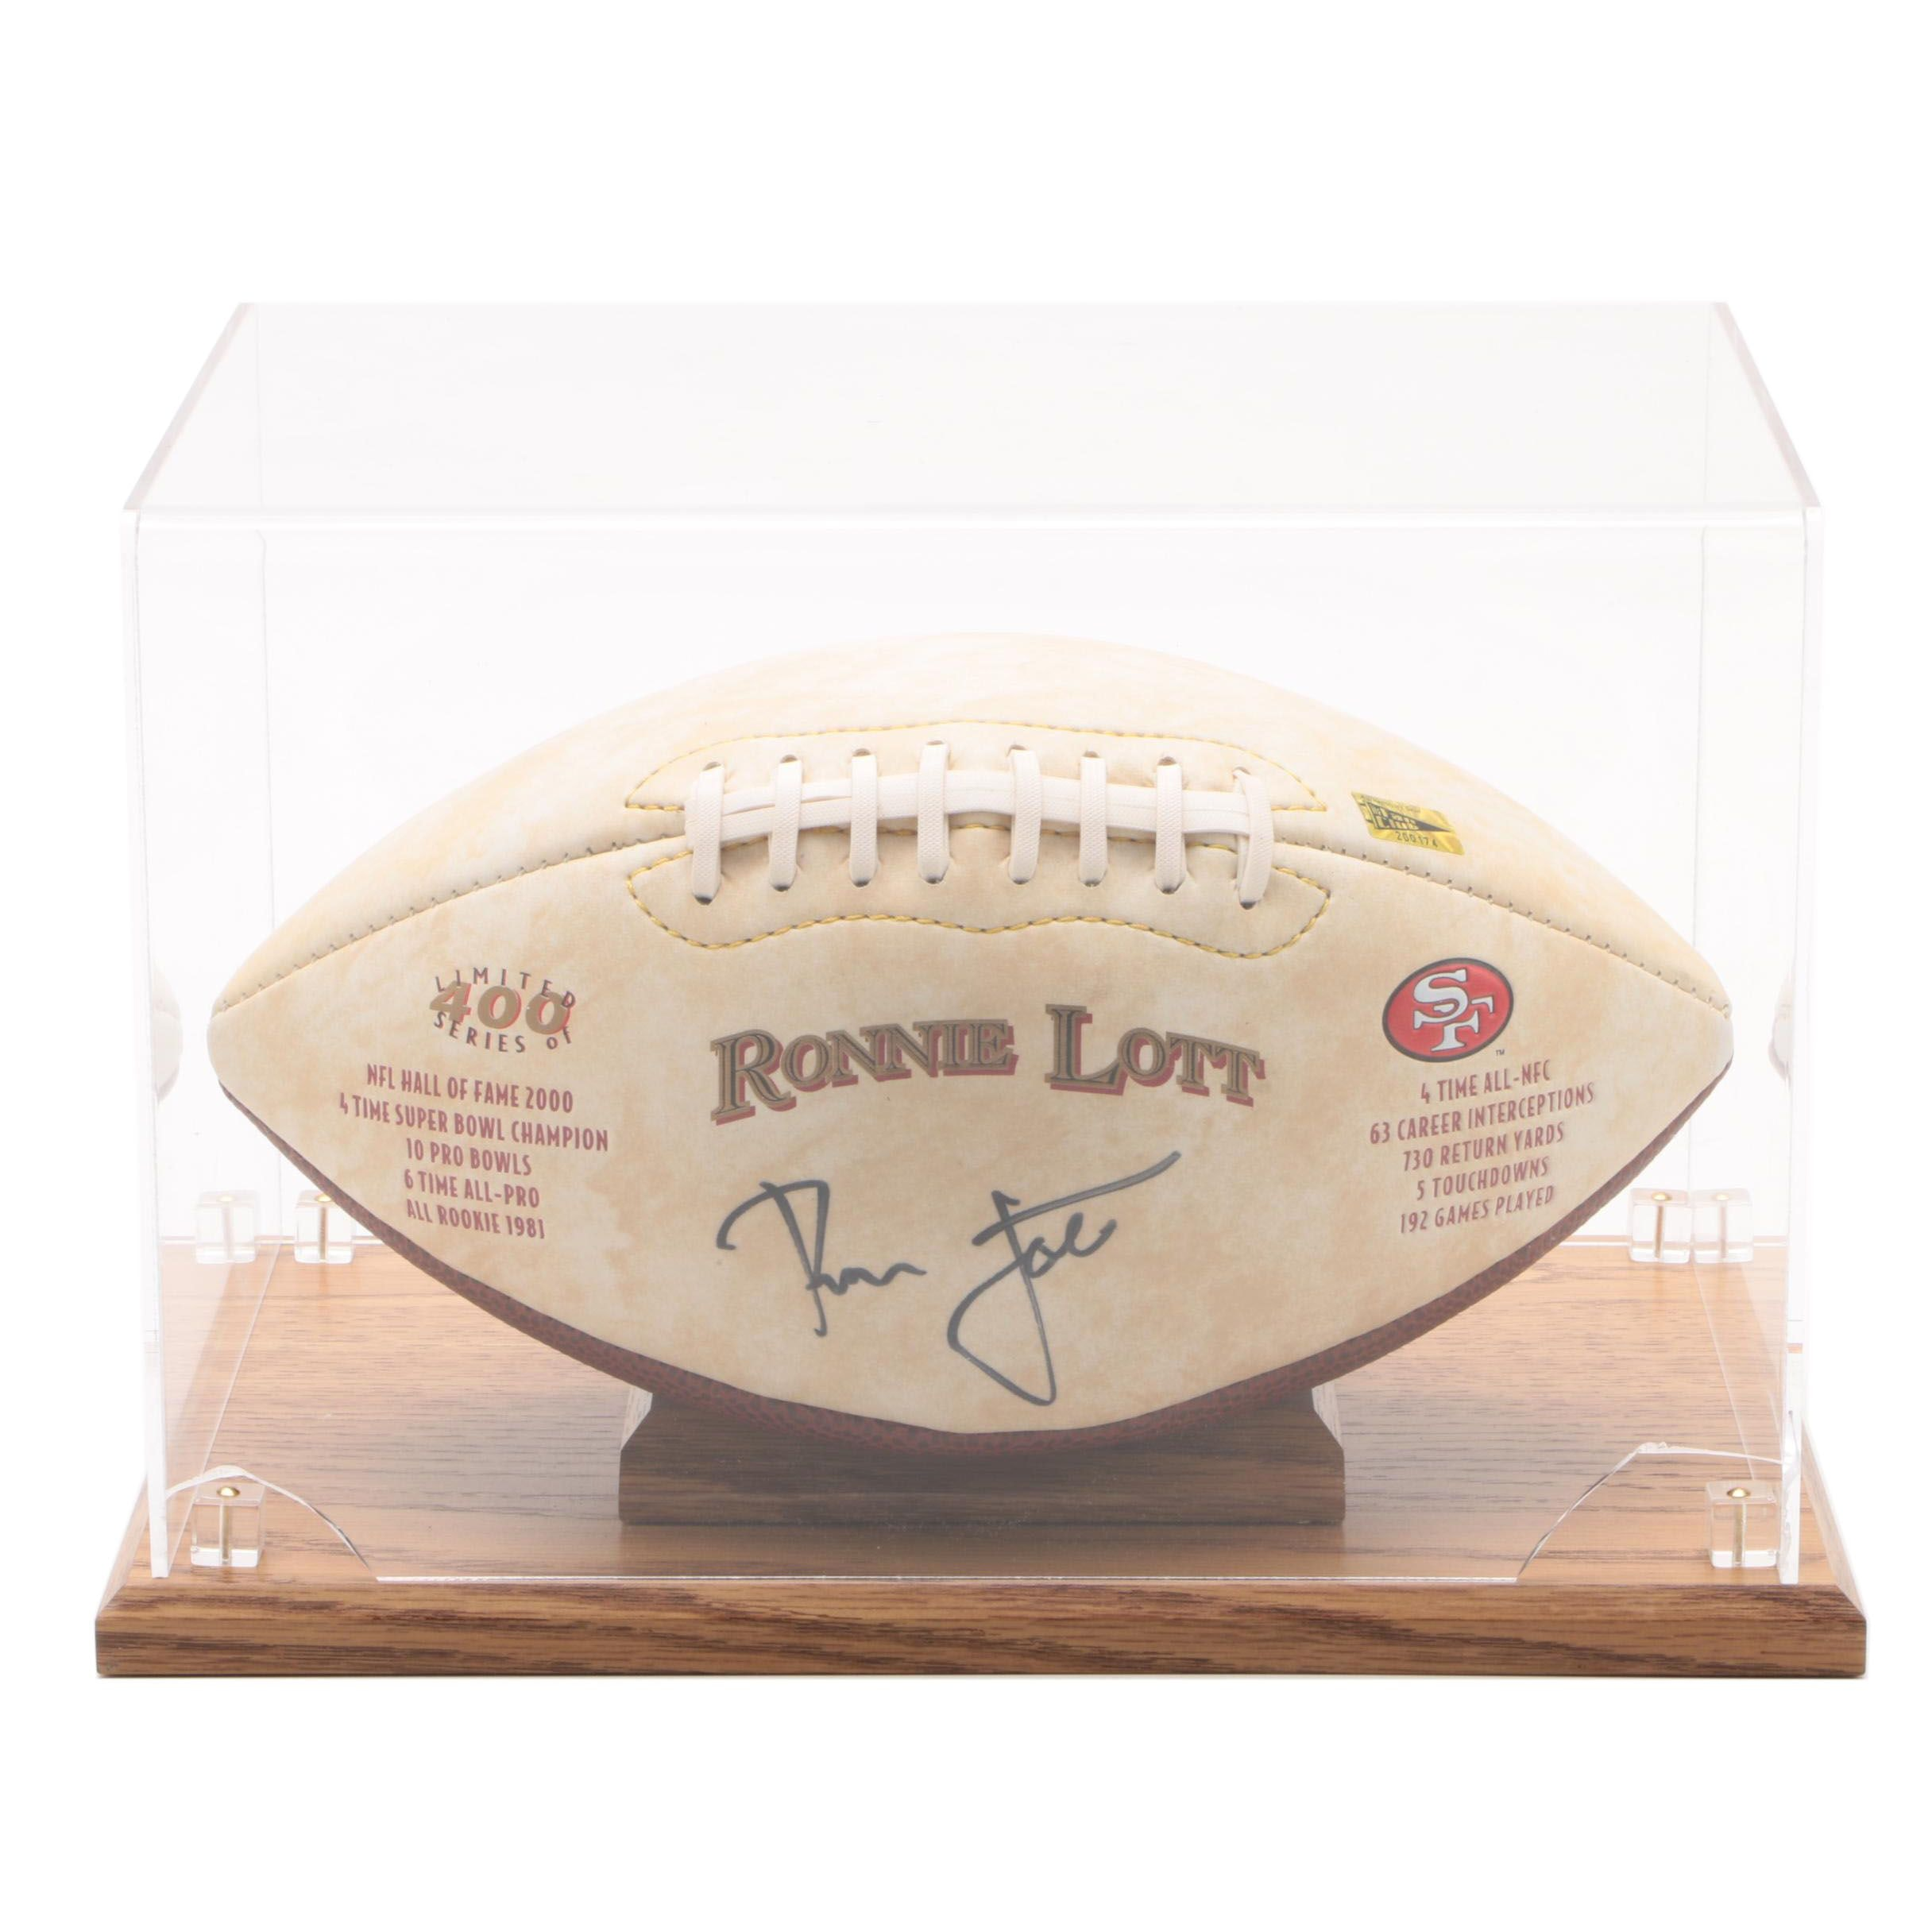 Ronnie Lott Autographed Commemorative San Francisco 49ers Football